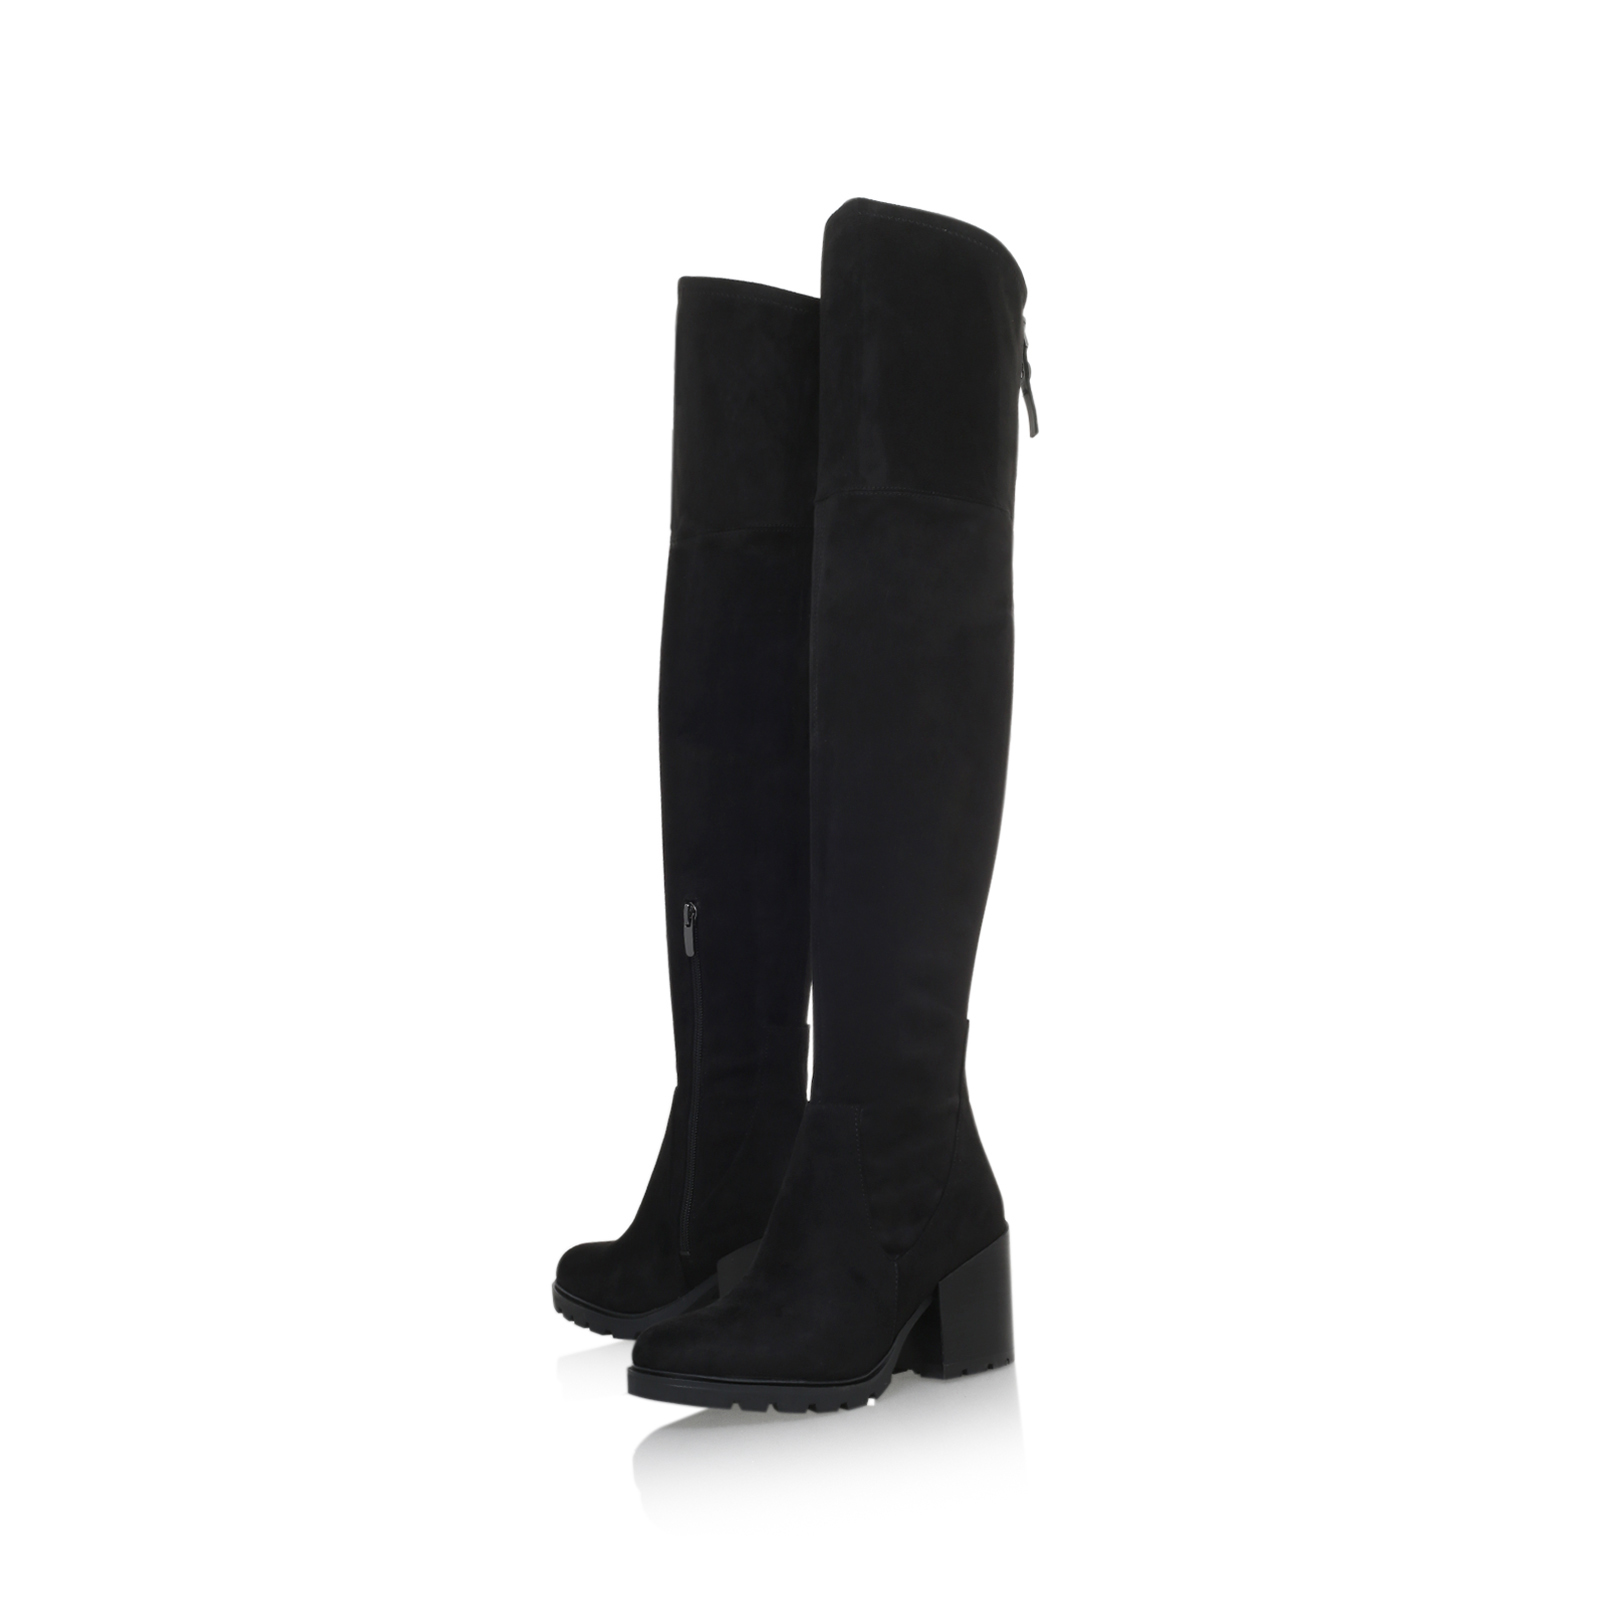 ea0be1c5618 SAWYER  Kendall   Kylie Sawyer Black Suede High Leg Boot  by KENDALL ...